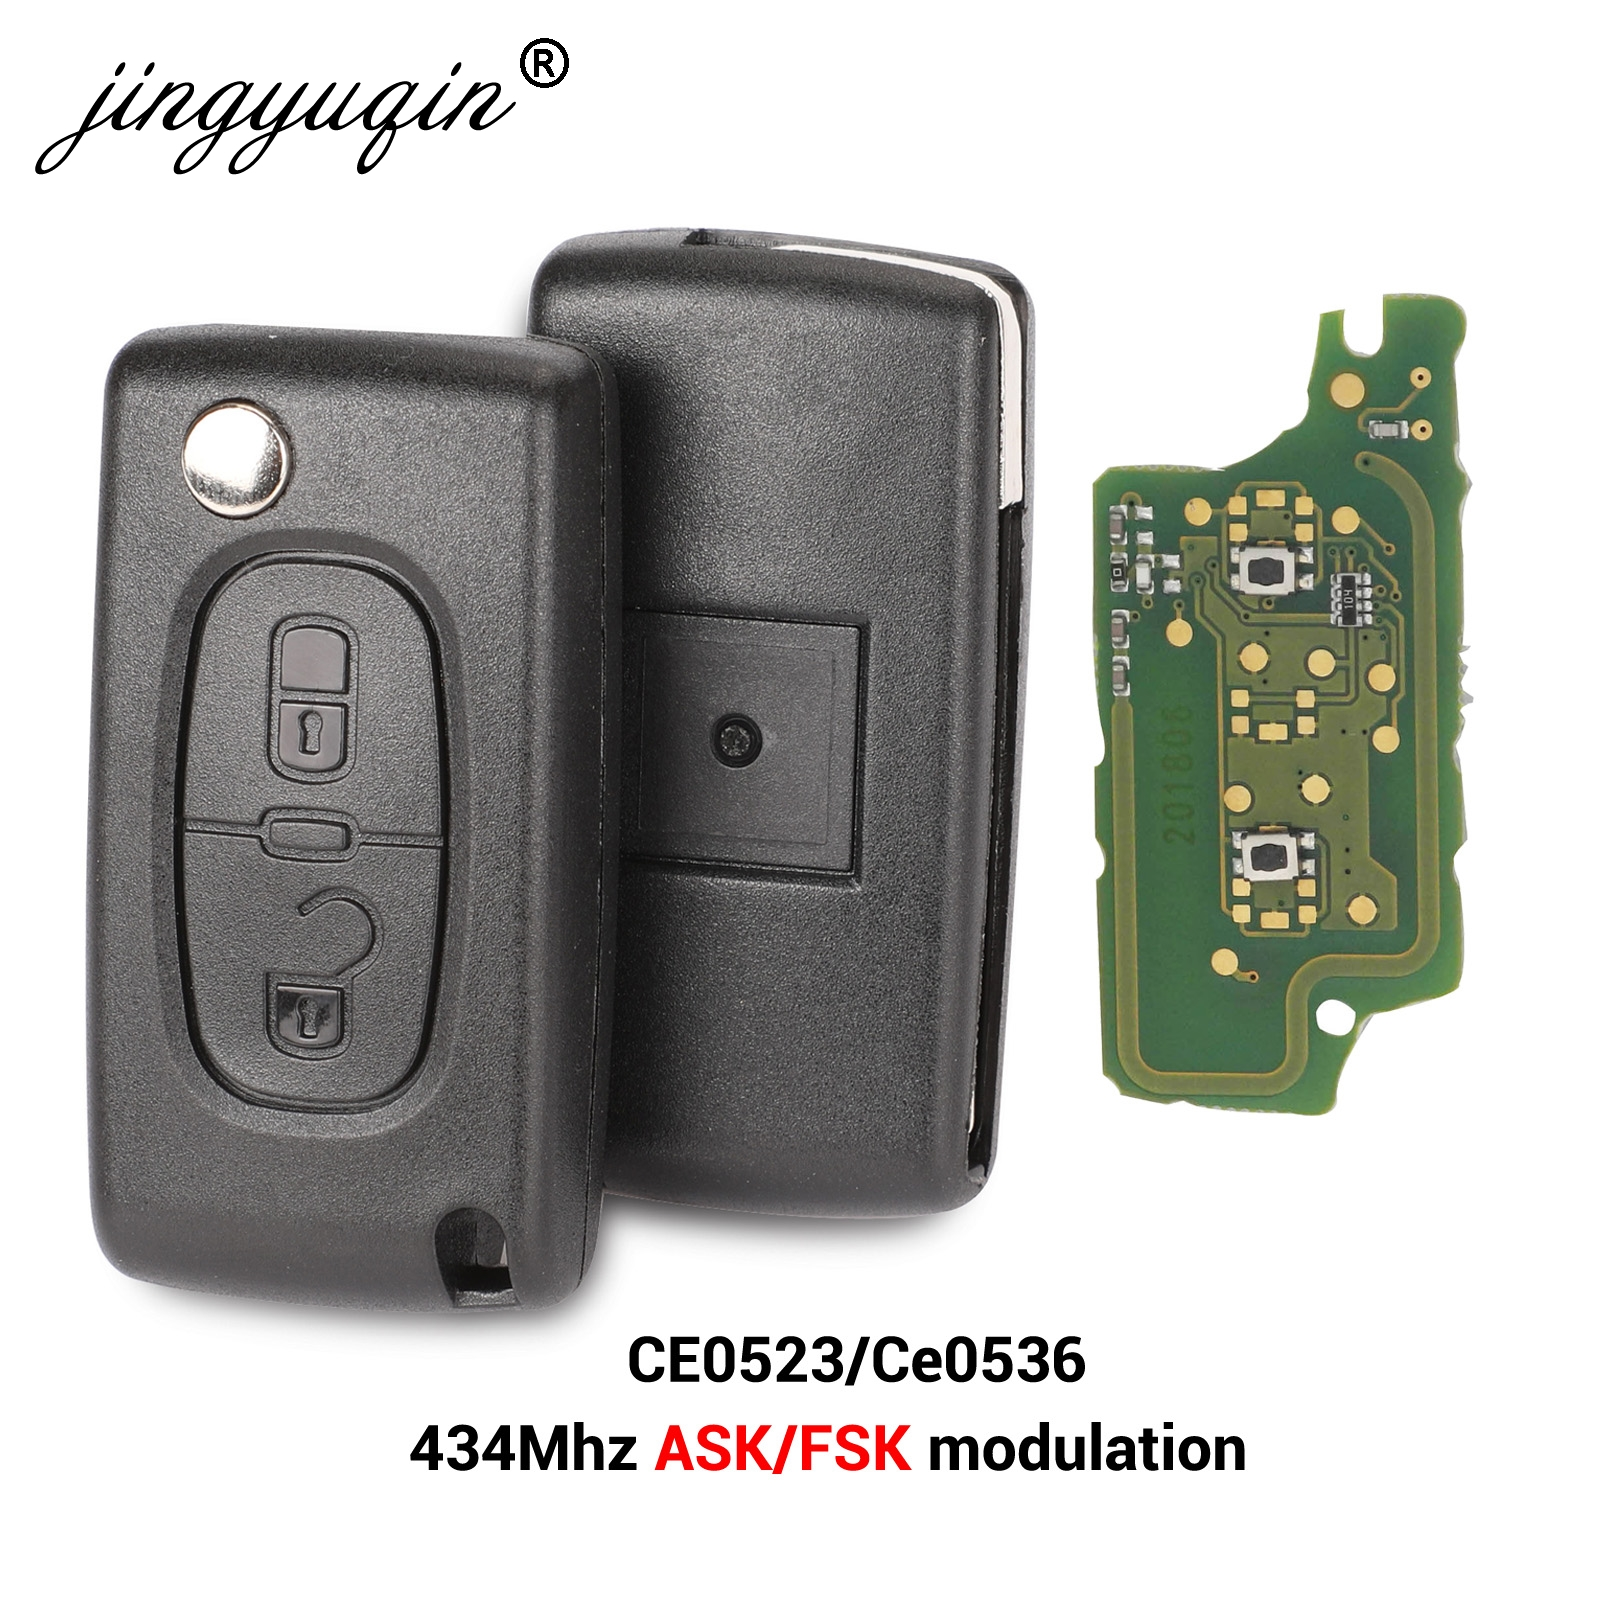 jingyuqin 434Mhz ASK FSK 2 Button Remote Flip Key Fob For Citroen C2 C3 C4 C5 C6 C8 Xsara Picasso CE0523 Ce0536 VA2/HCA Blade-in Car Key from Automobiles & Motorcycles